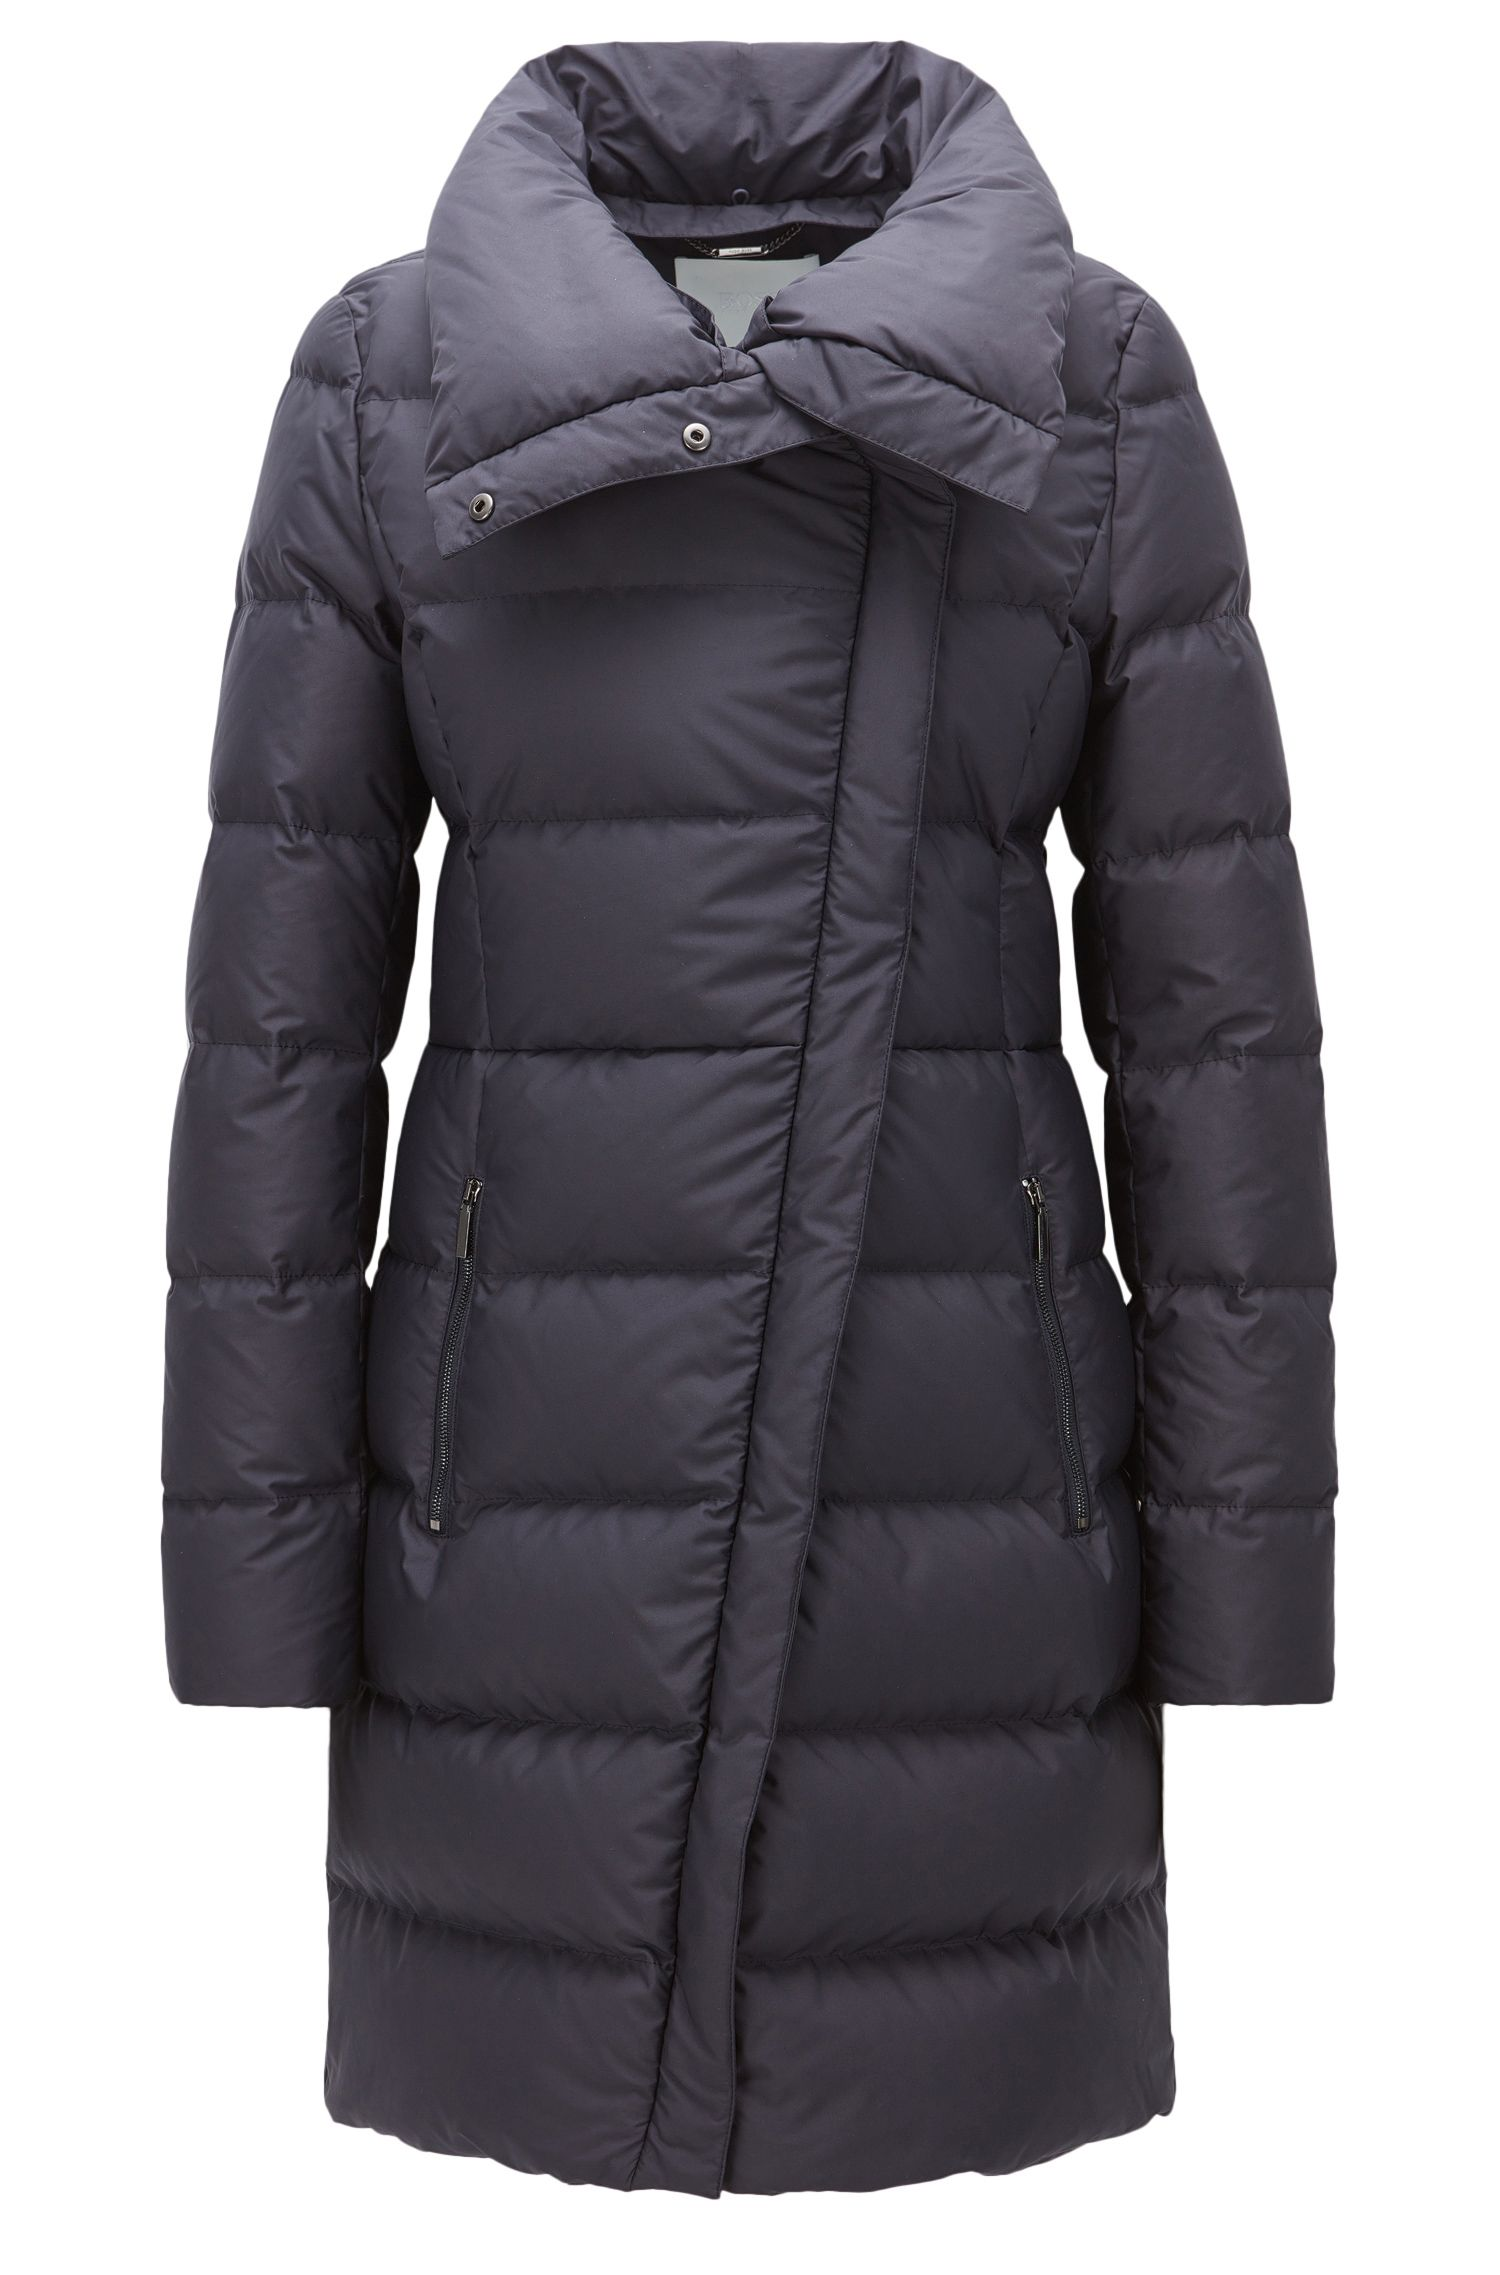 Fur-Lined Nylon Quilted Coat | Patalona